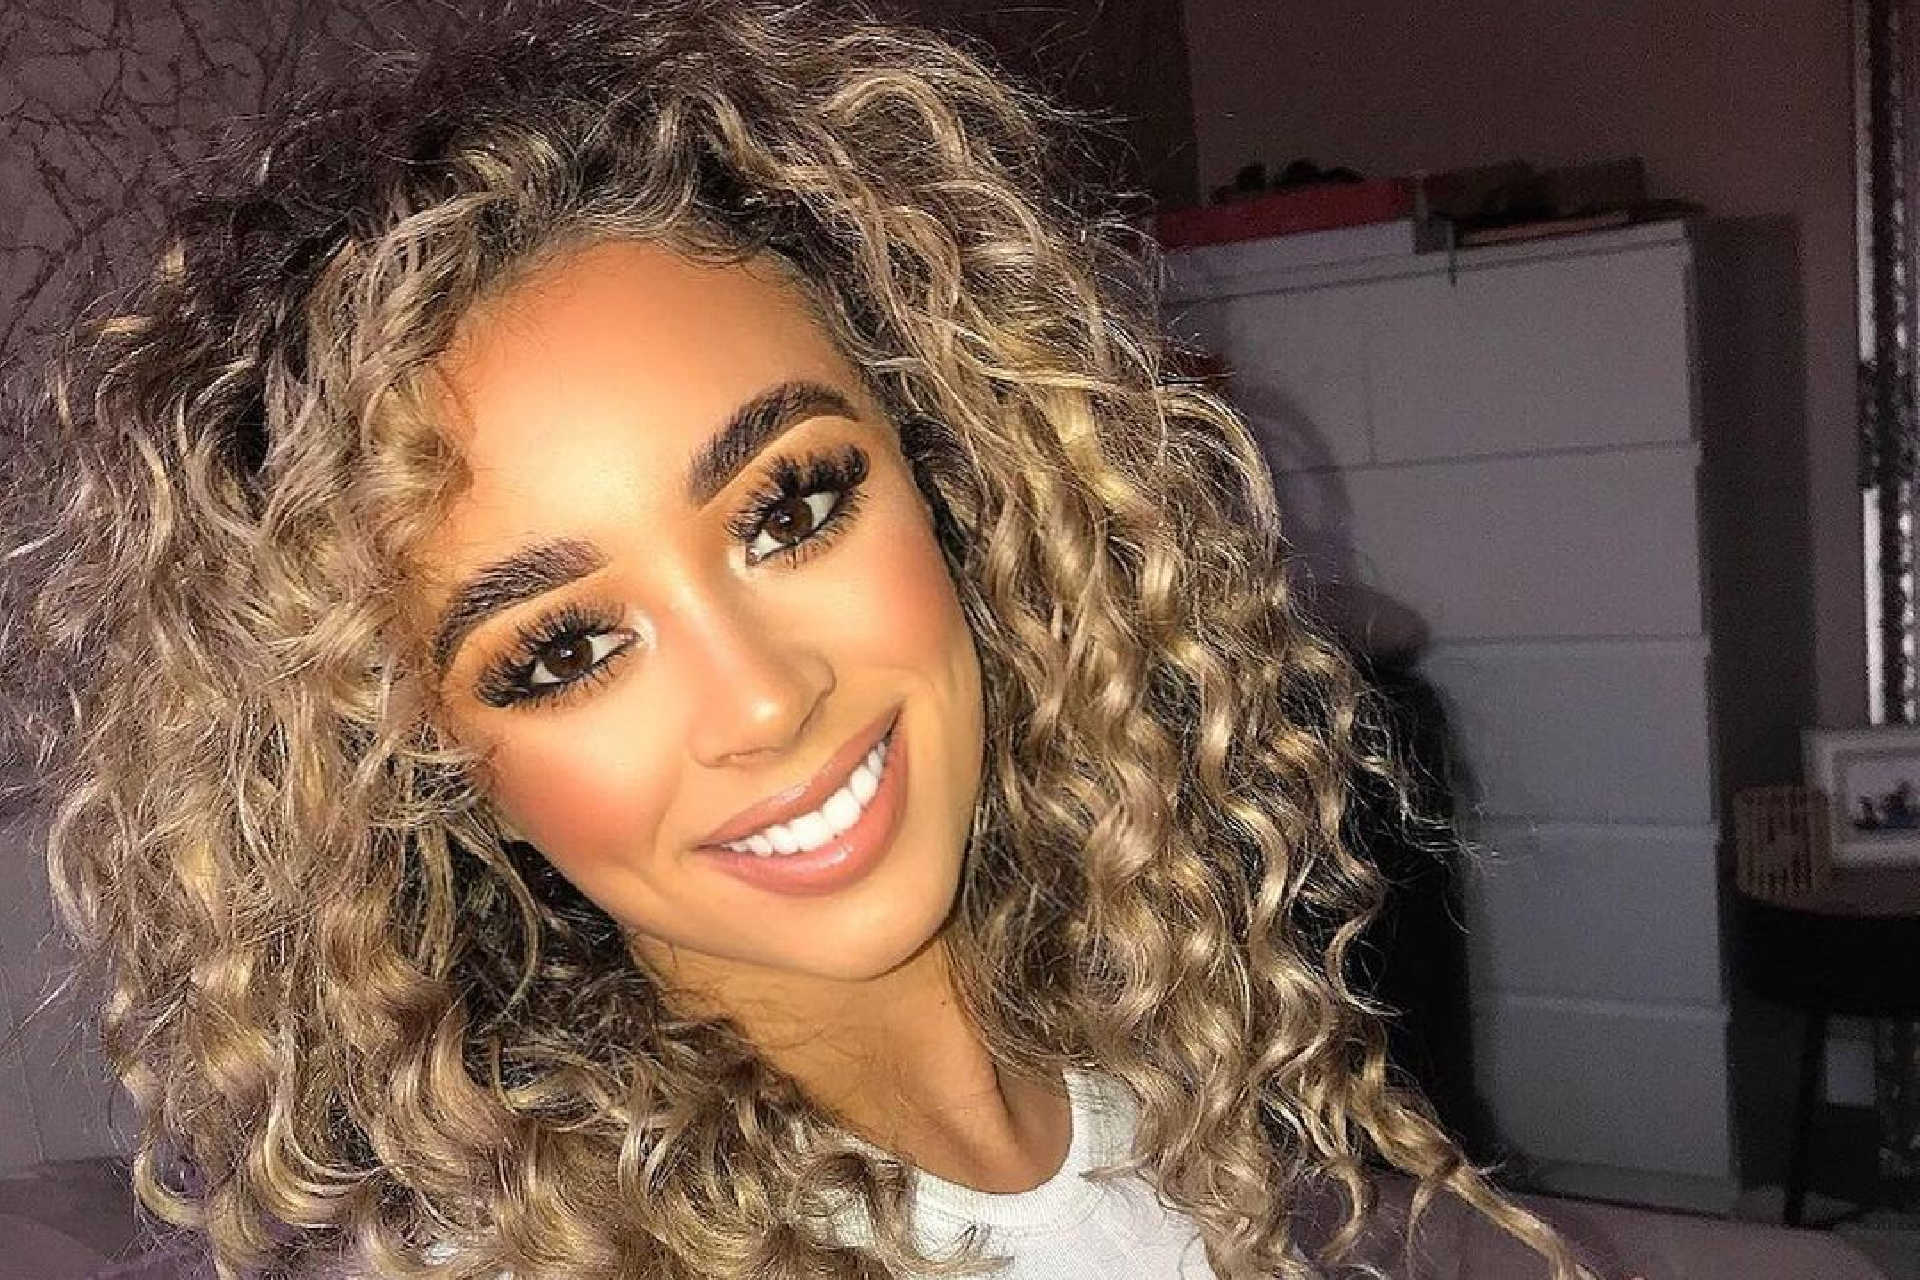 The tragic death of Paige Rice, a 22-year-old beauty influencer